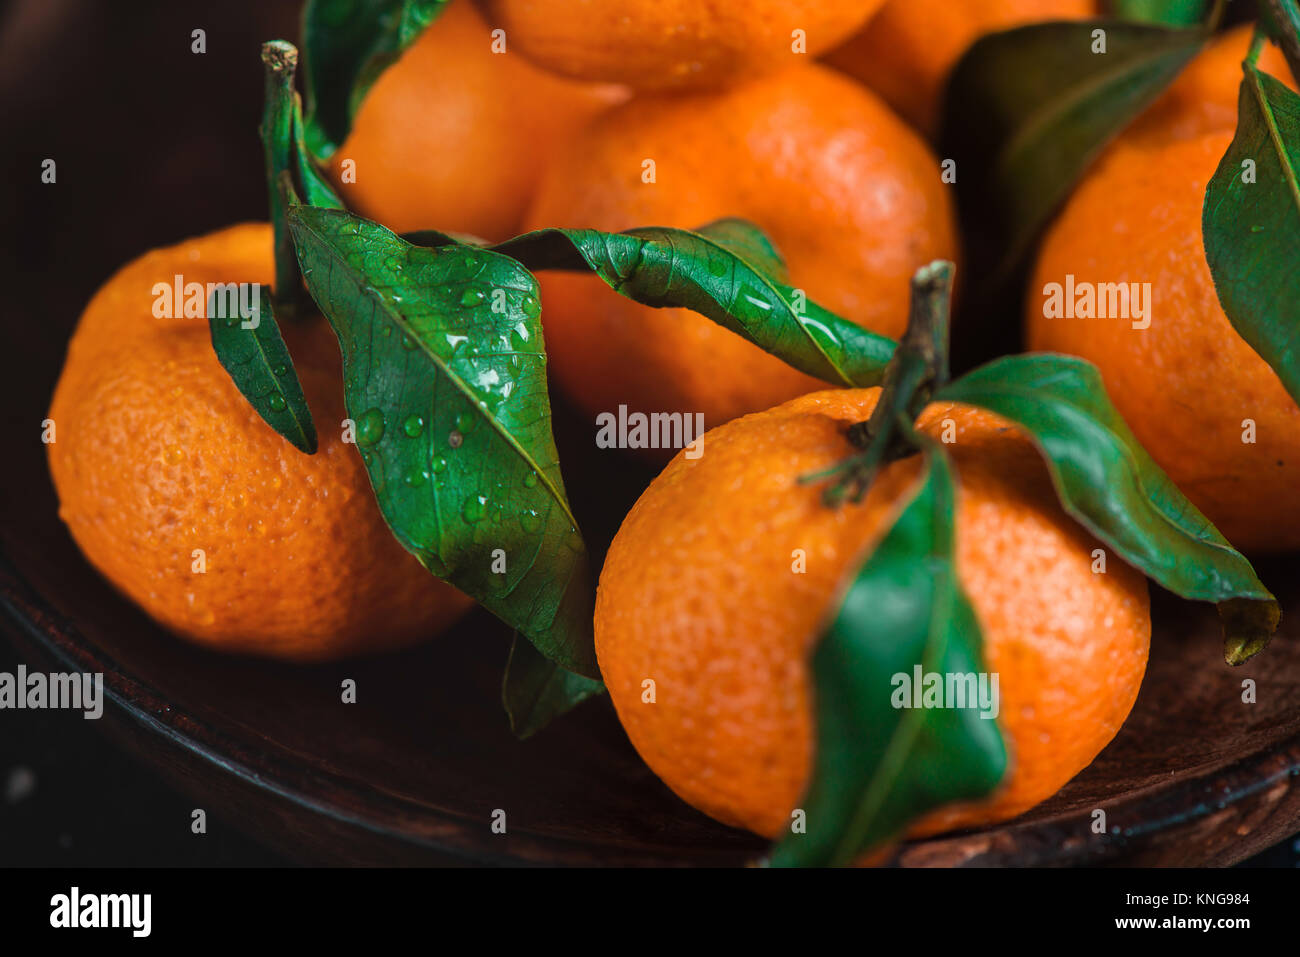 Close-up of tangerines in a wooden plate on a dark background. Water drops on a surface. Rustic food photography - Stock Image